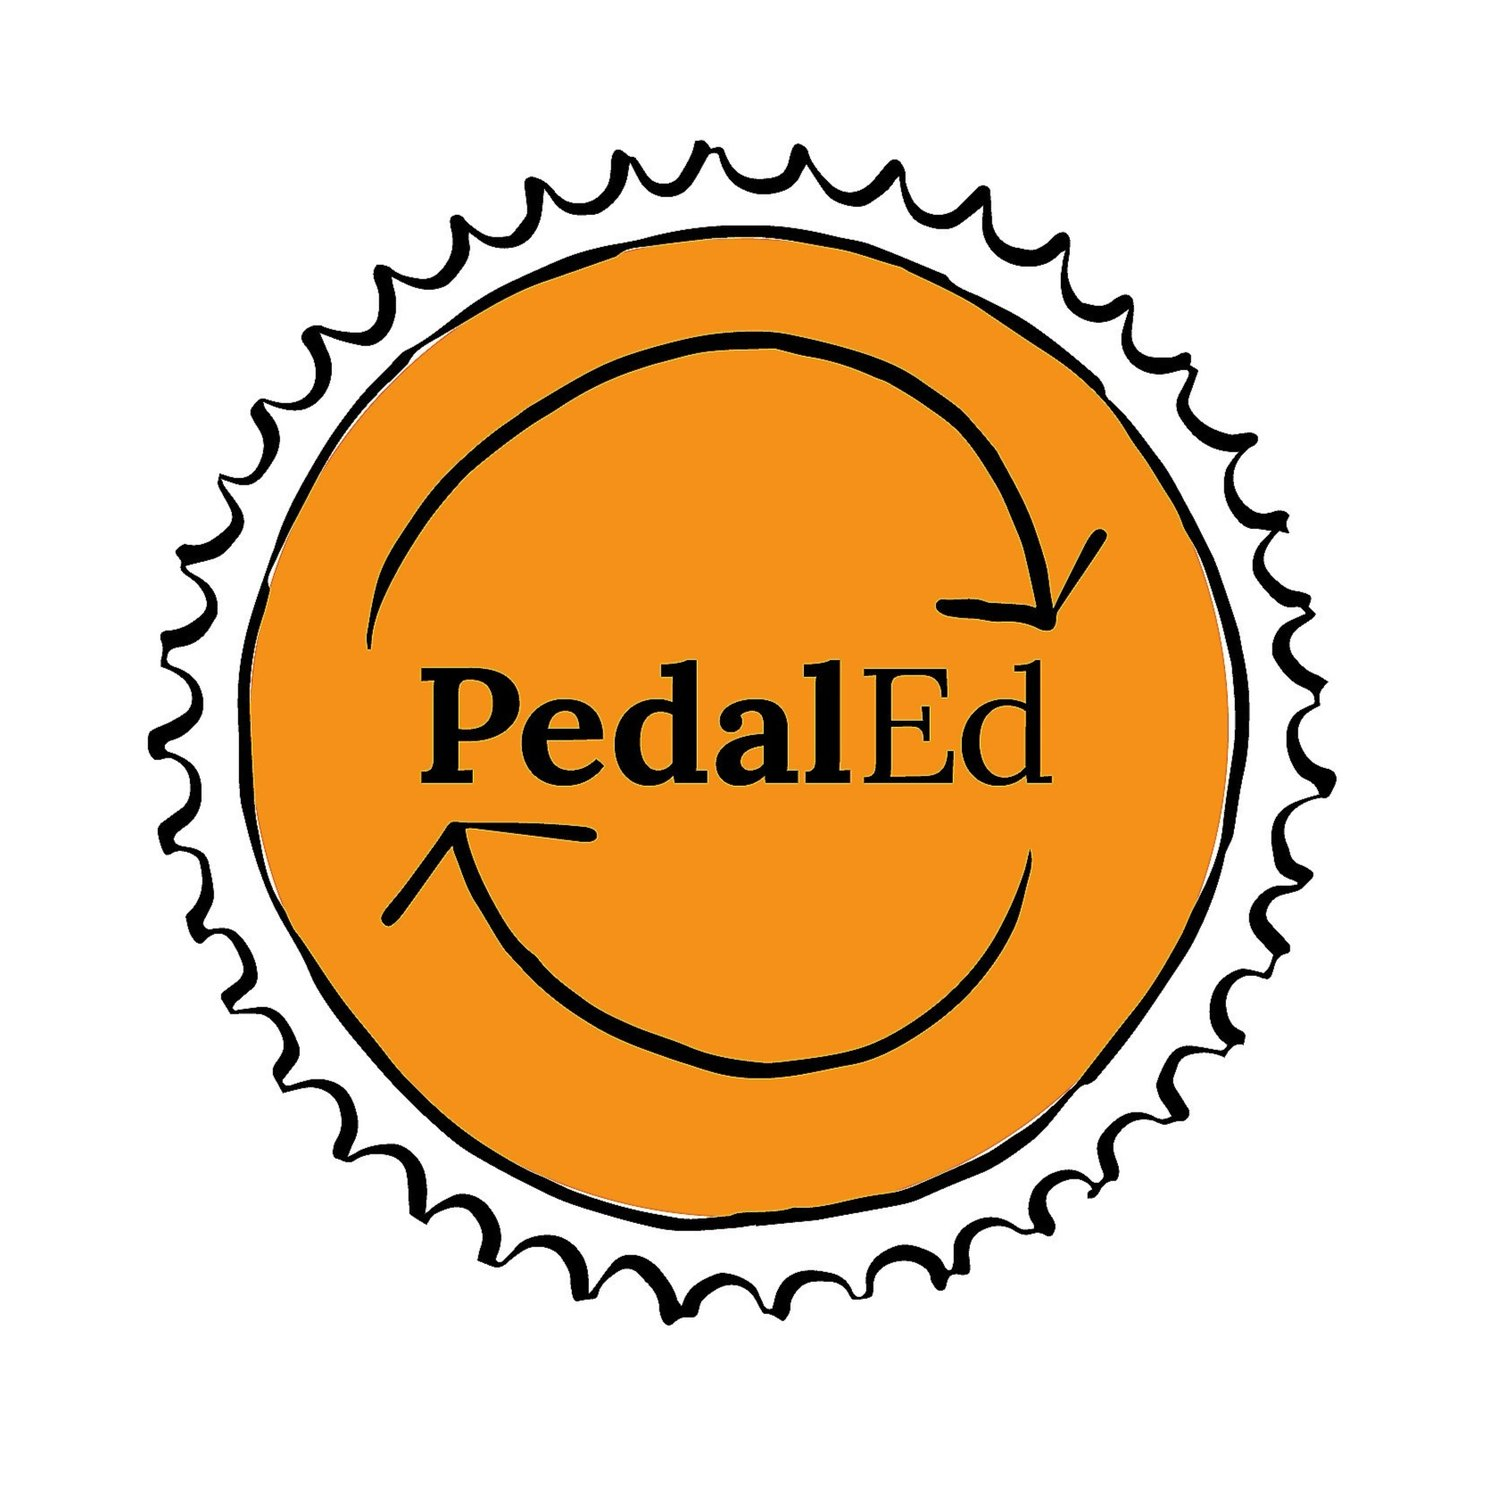 PedalEd - Basic, advanced and urban cycle skills for everyone